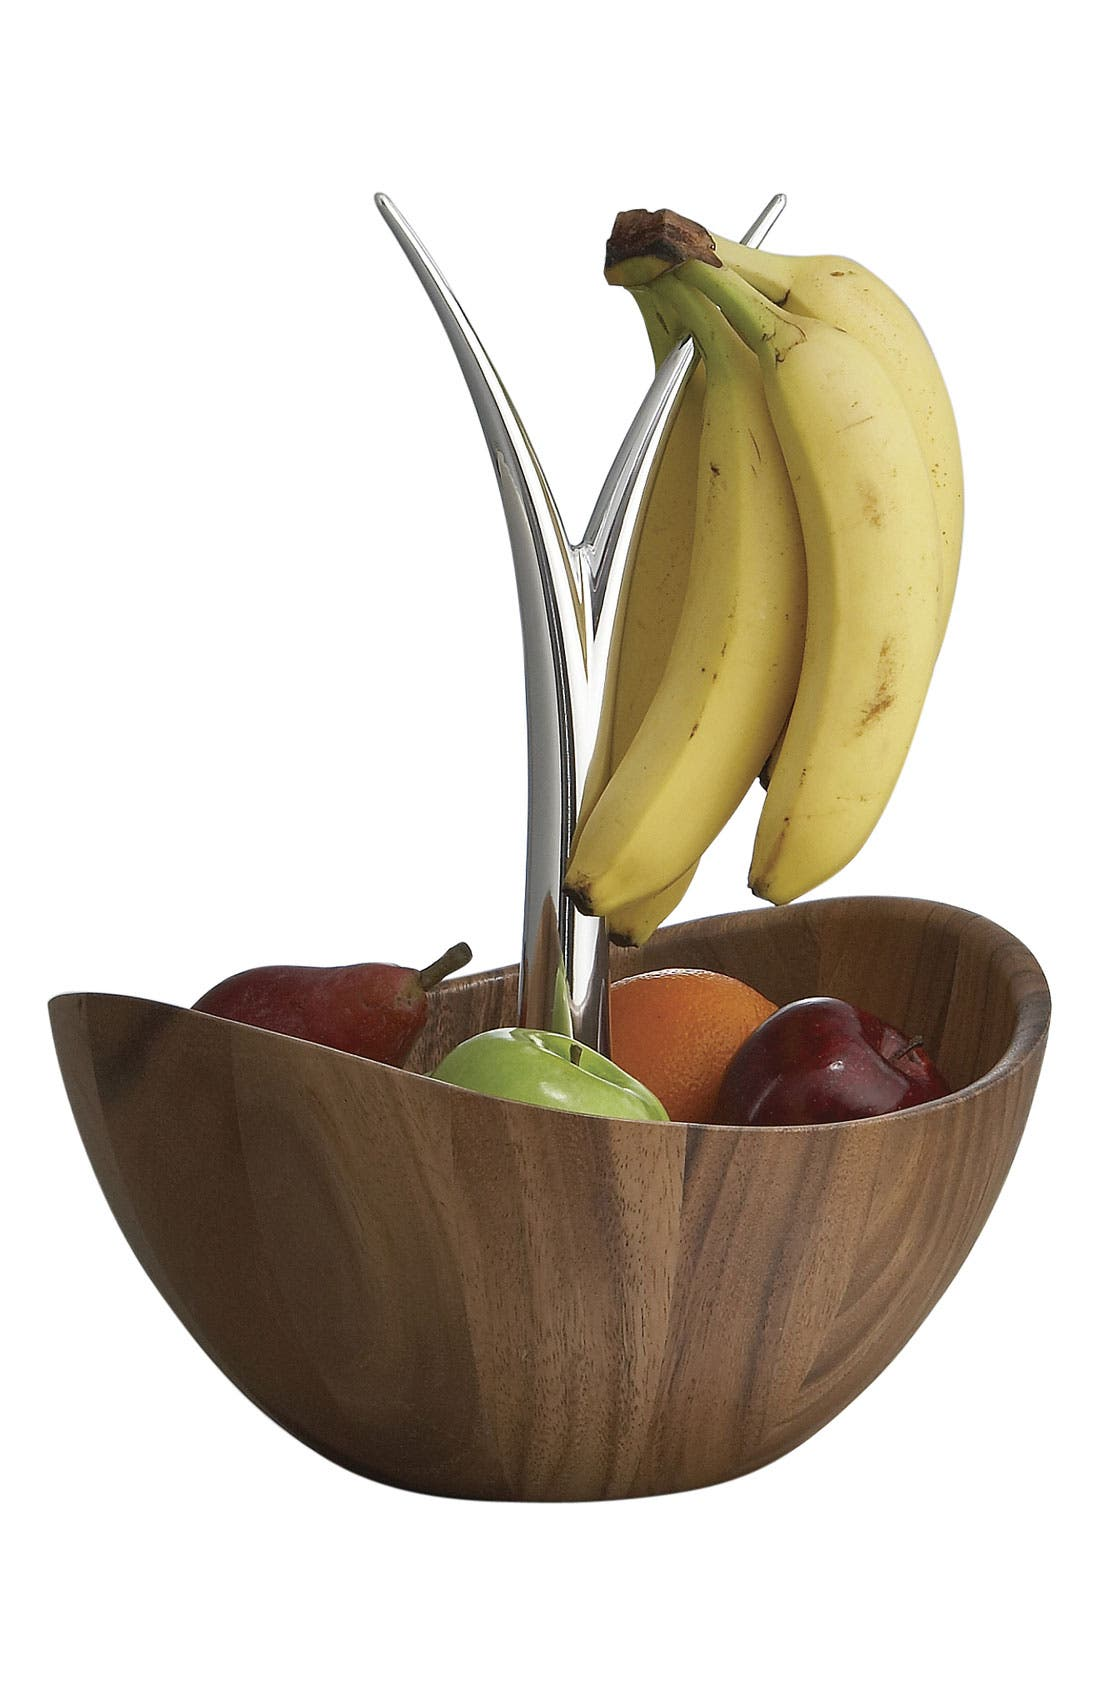 Alternate Image 1 Selected - Nambé 'Fruit Tree' Bowl